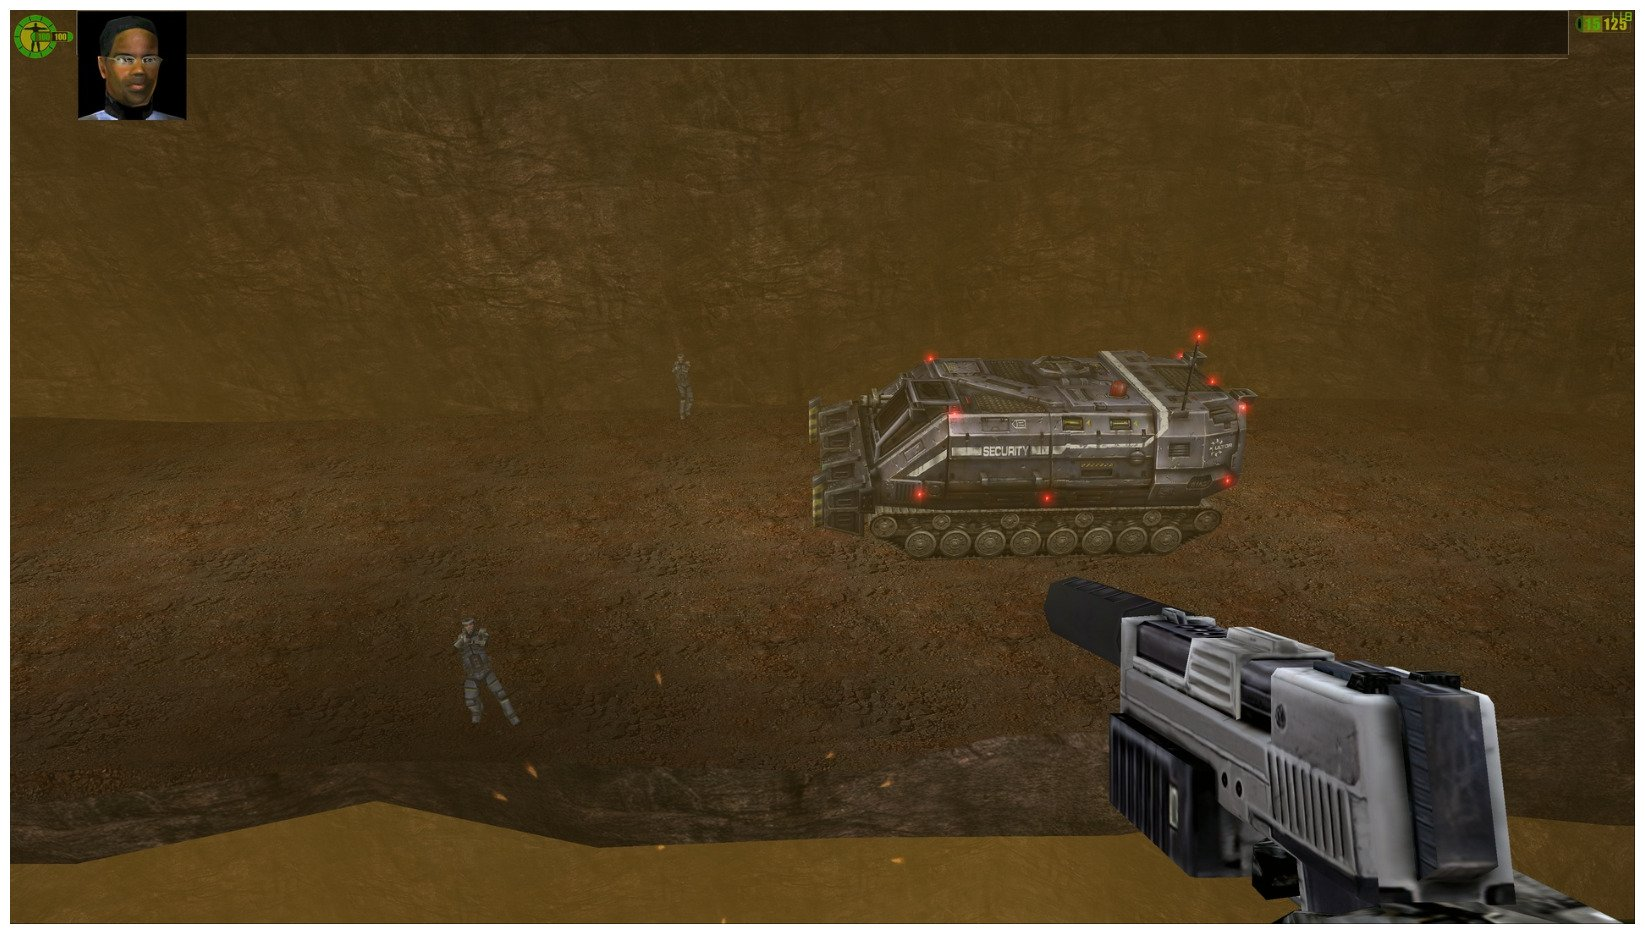 Image 20 : Red Faction transformé grâce à un pack de textures HD